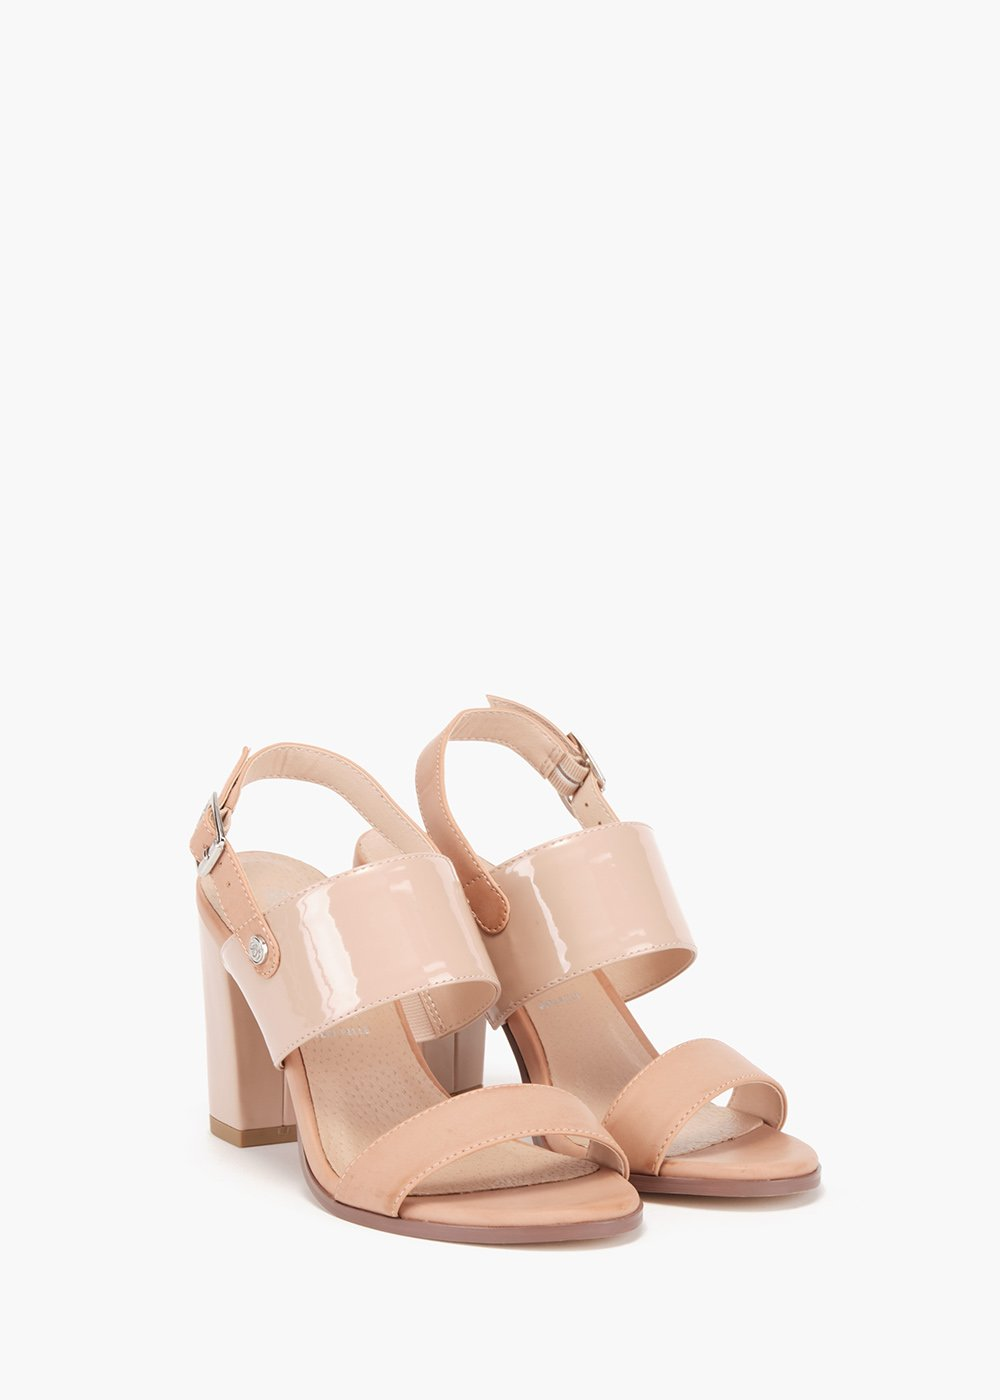 Shyla sandals with nude effect and double band in eco leather and patent leather - Grey - Woman